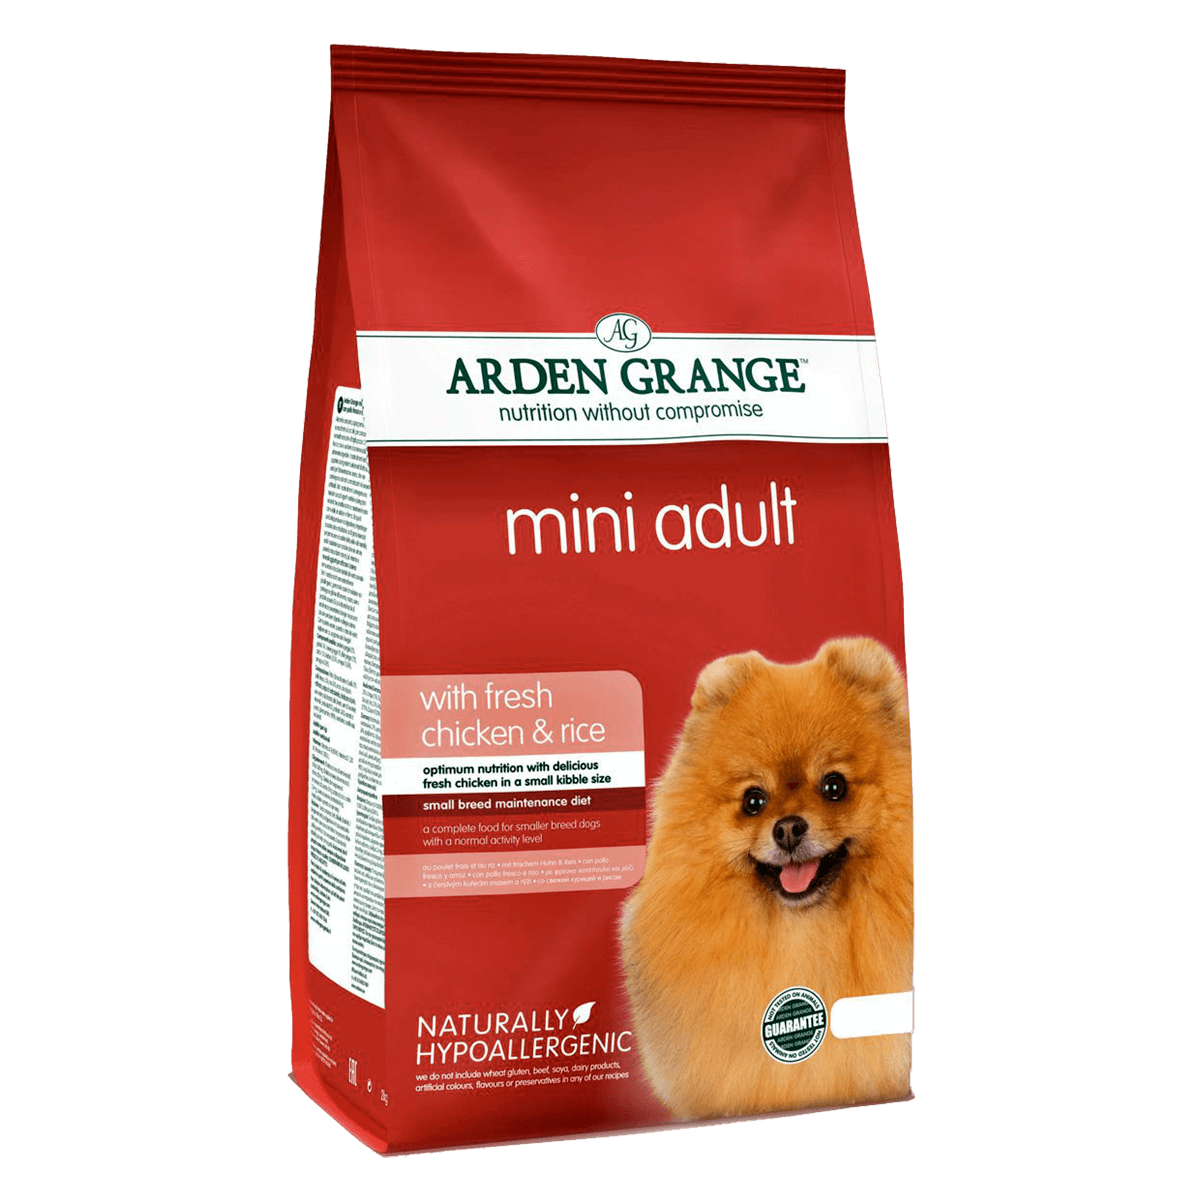 Arden Grange Mini Adult Dog Chicken & Rice 2 кг - корм Арден Гранж для мелких пород собак